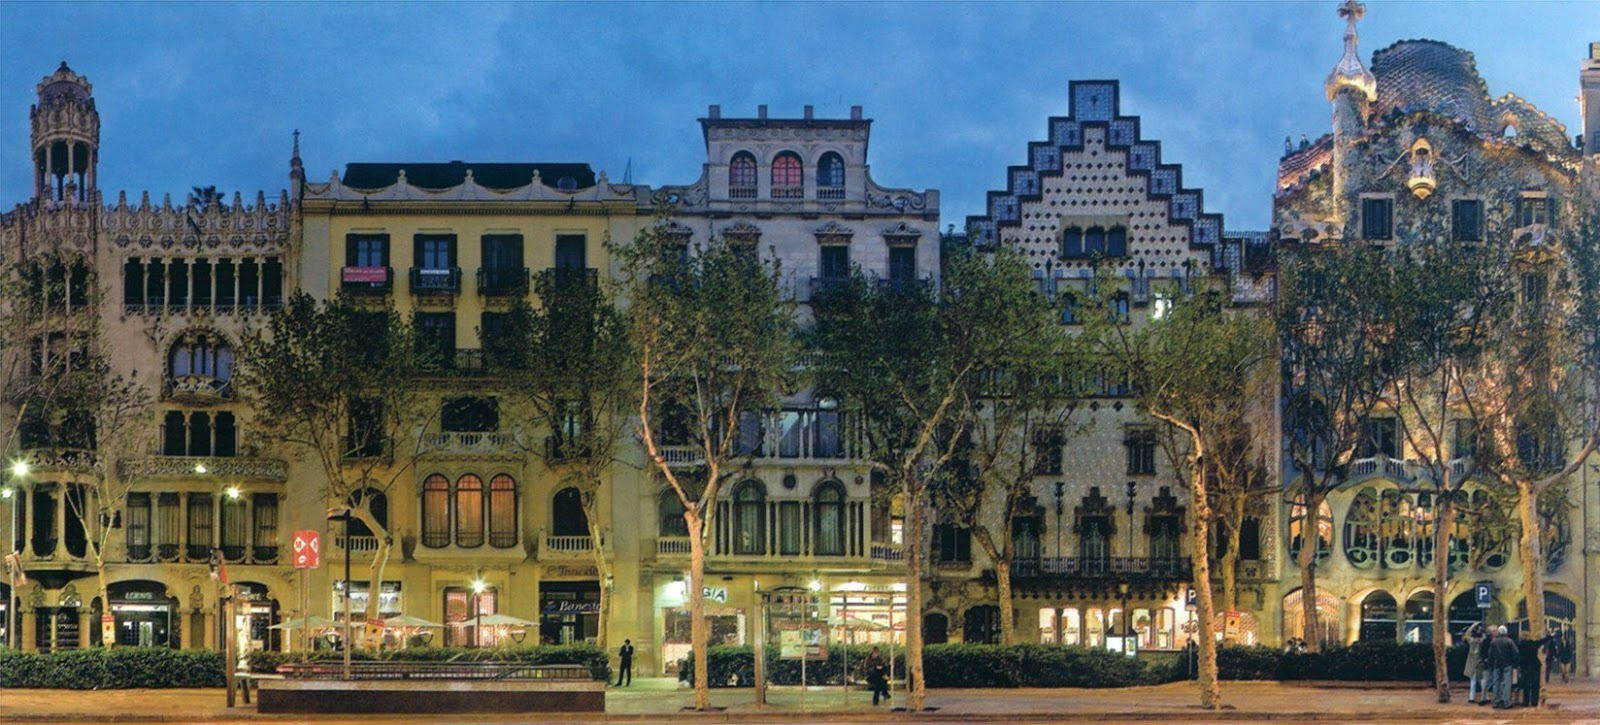 Travels and books the architecture of barcelona - Casa del libro barcelona passeig de gracia ...